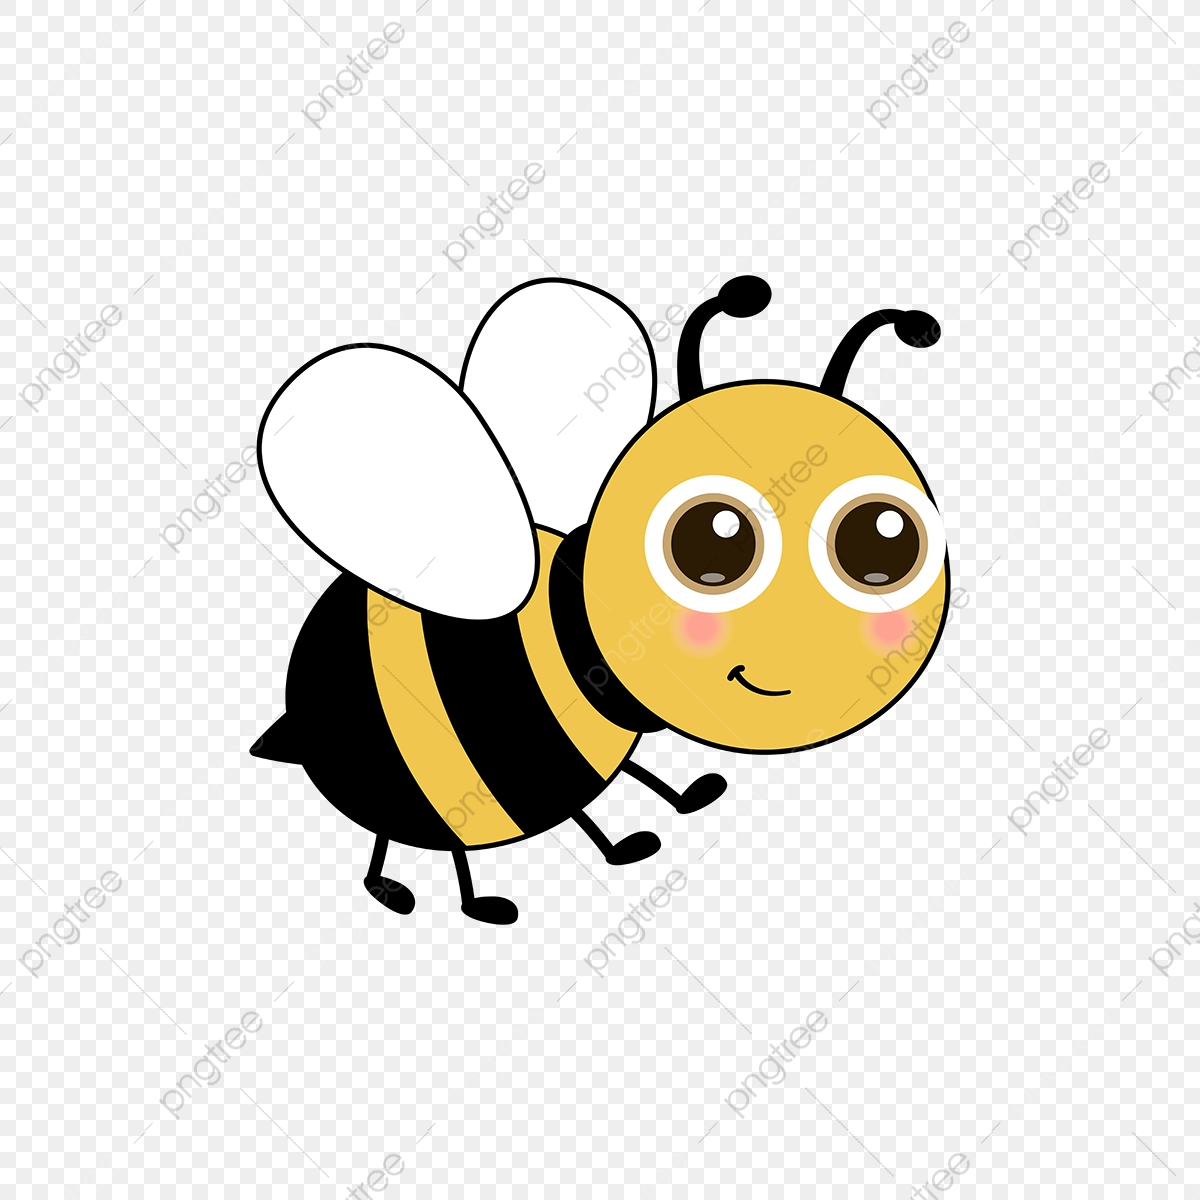 Bee Clipart Download Free Transparent Png Format Clipart Images On Pngtree